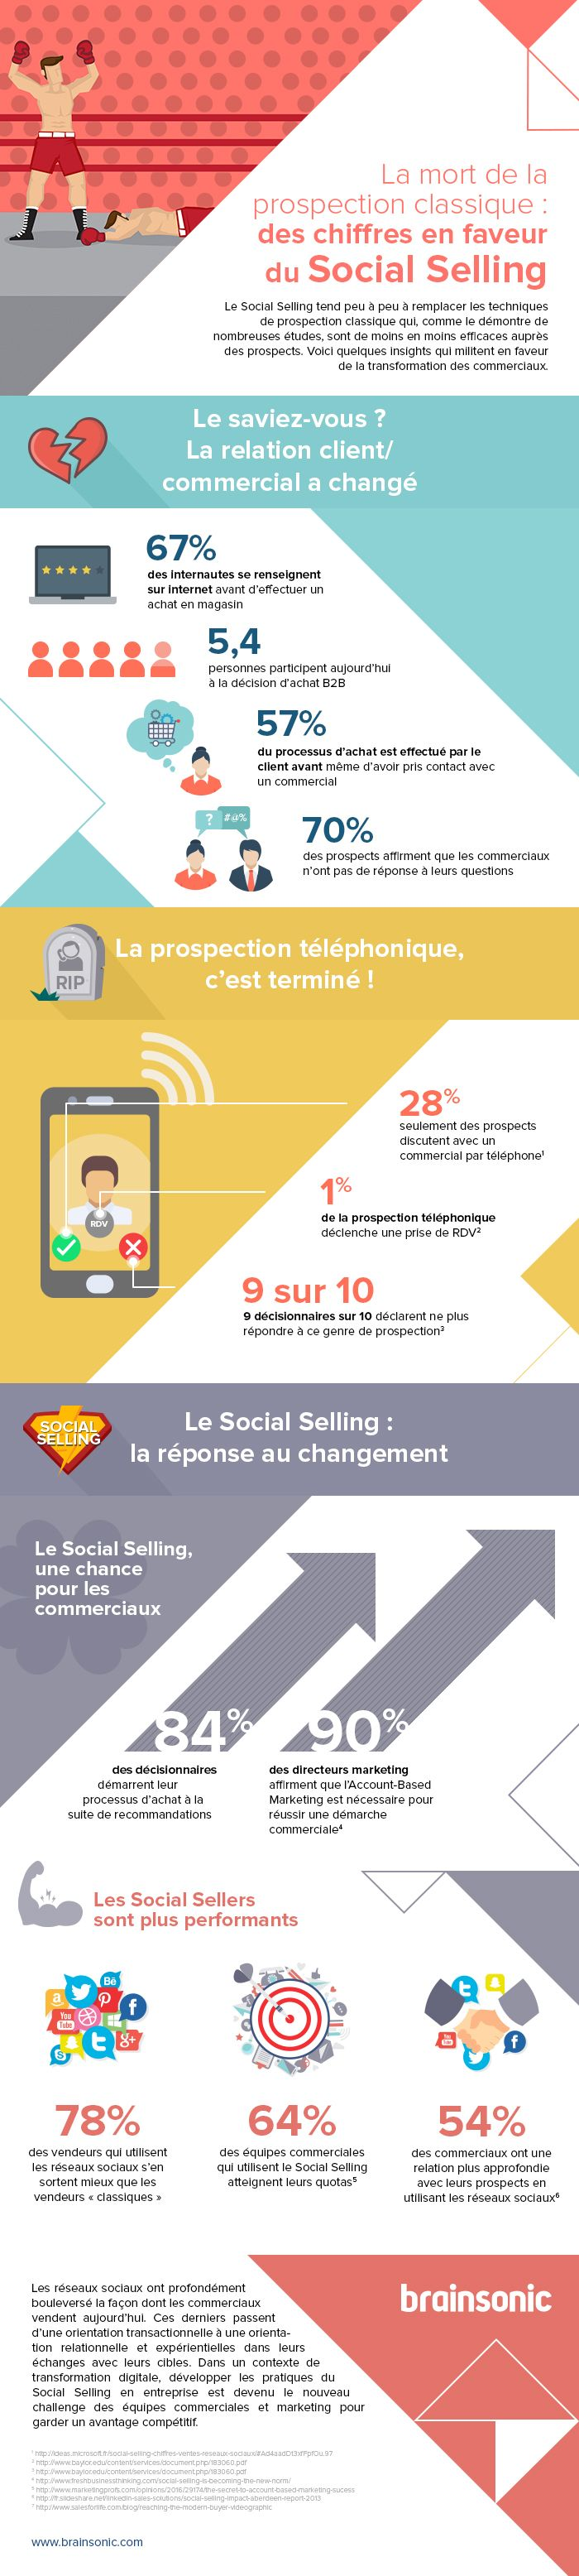 social-selling-infographie